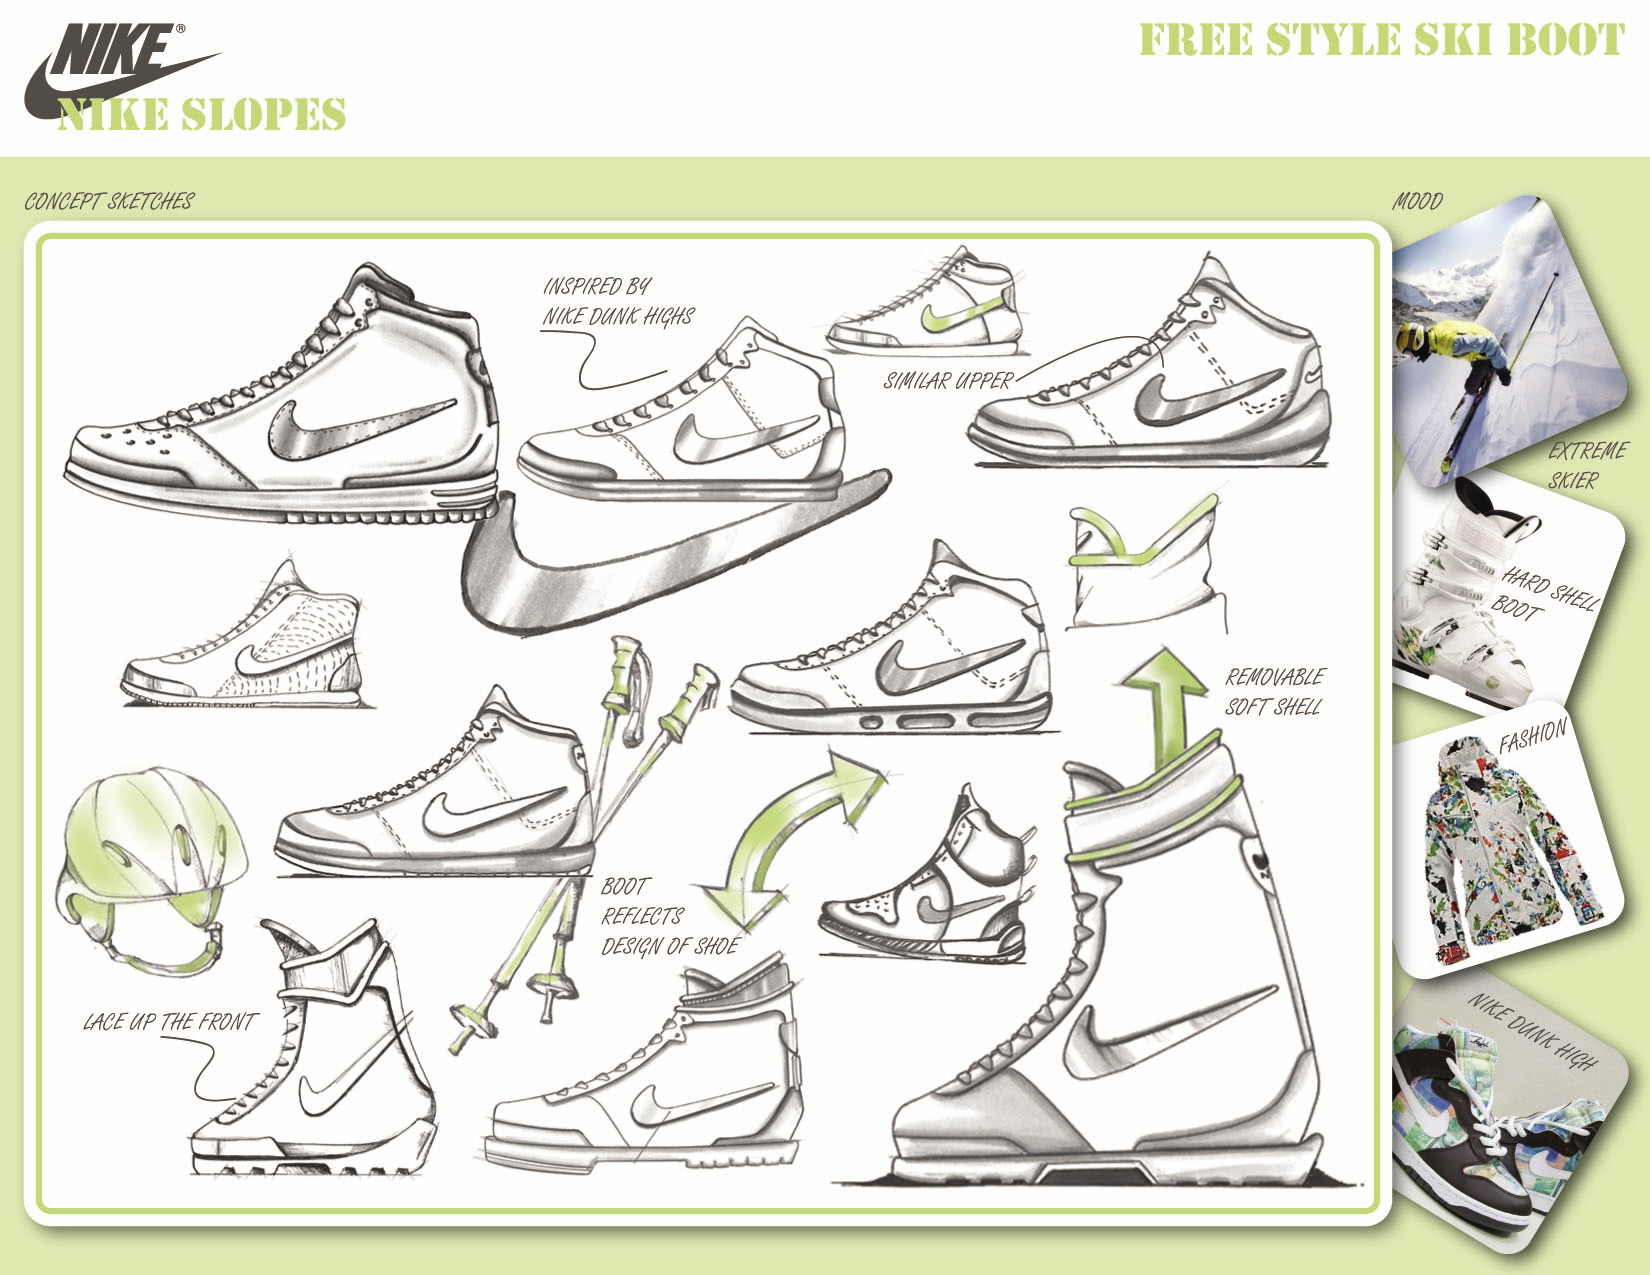 Boot design by nike - Share